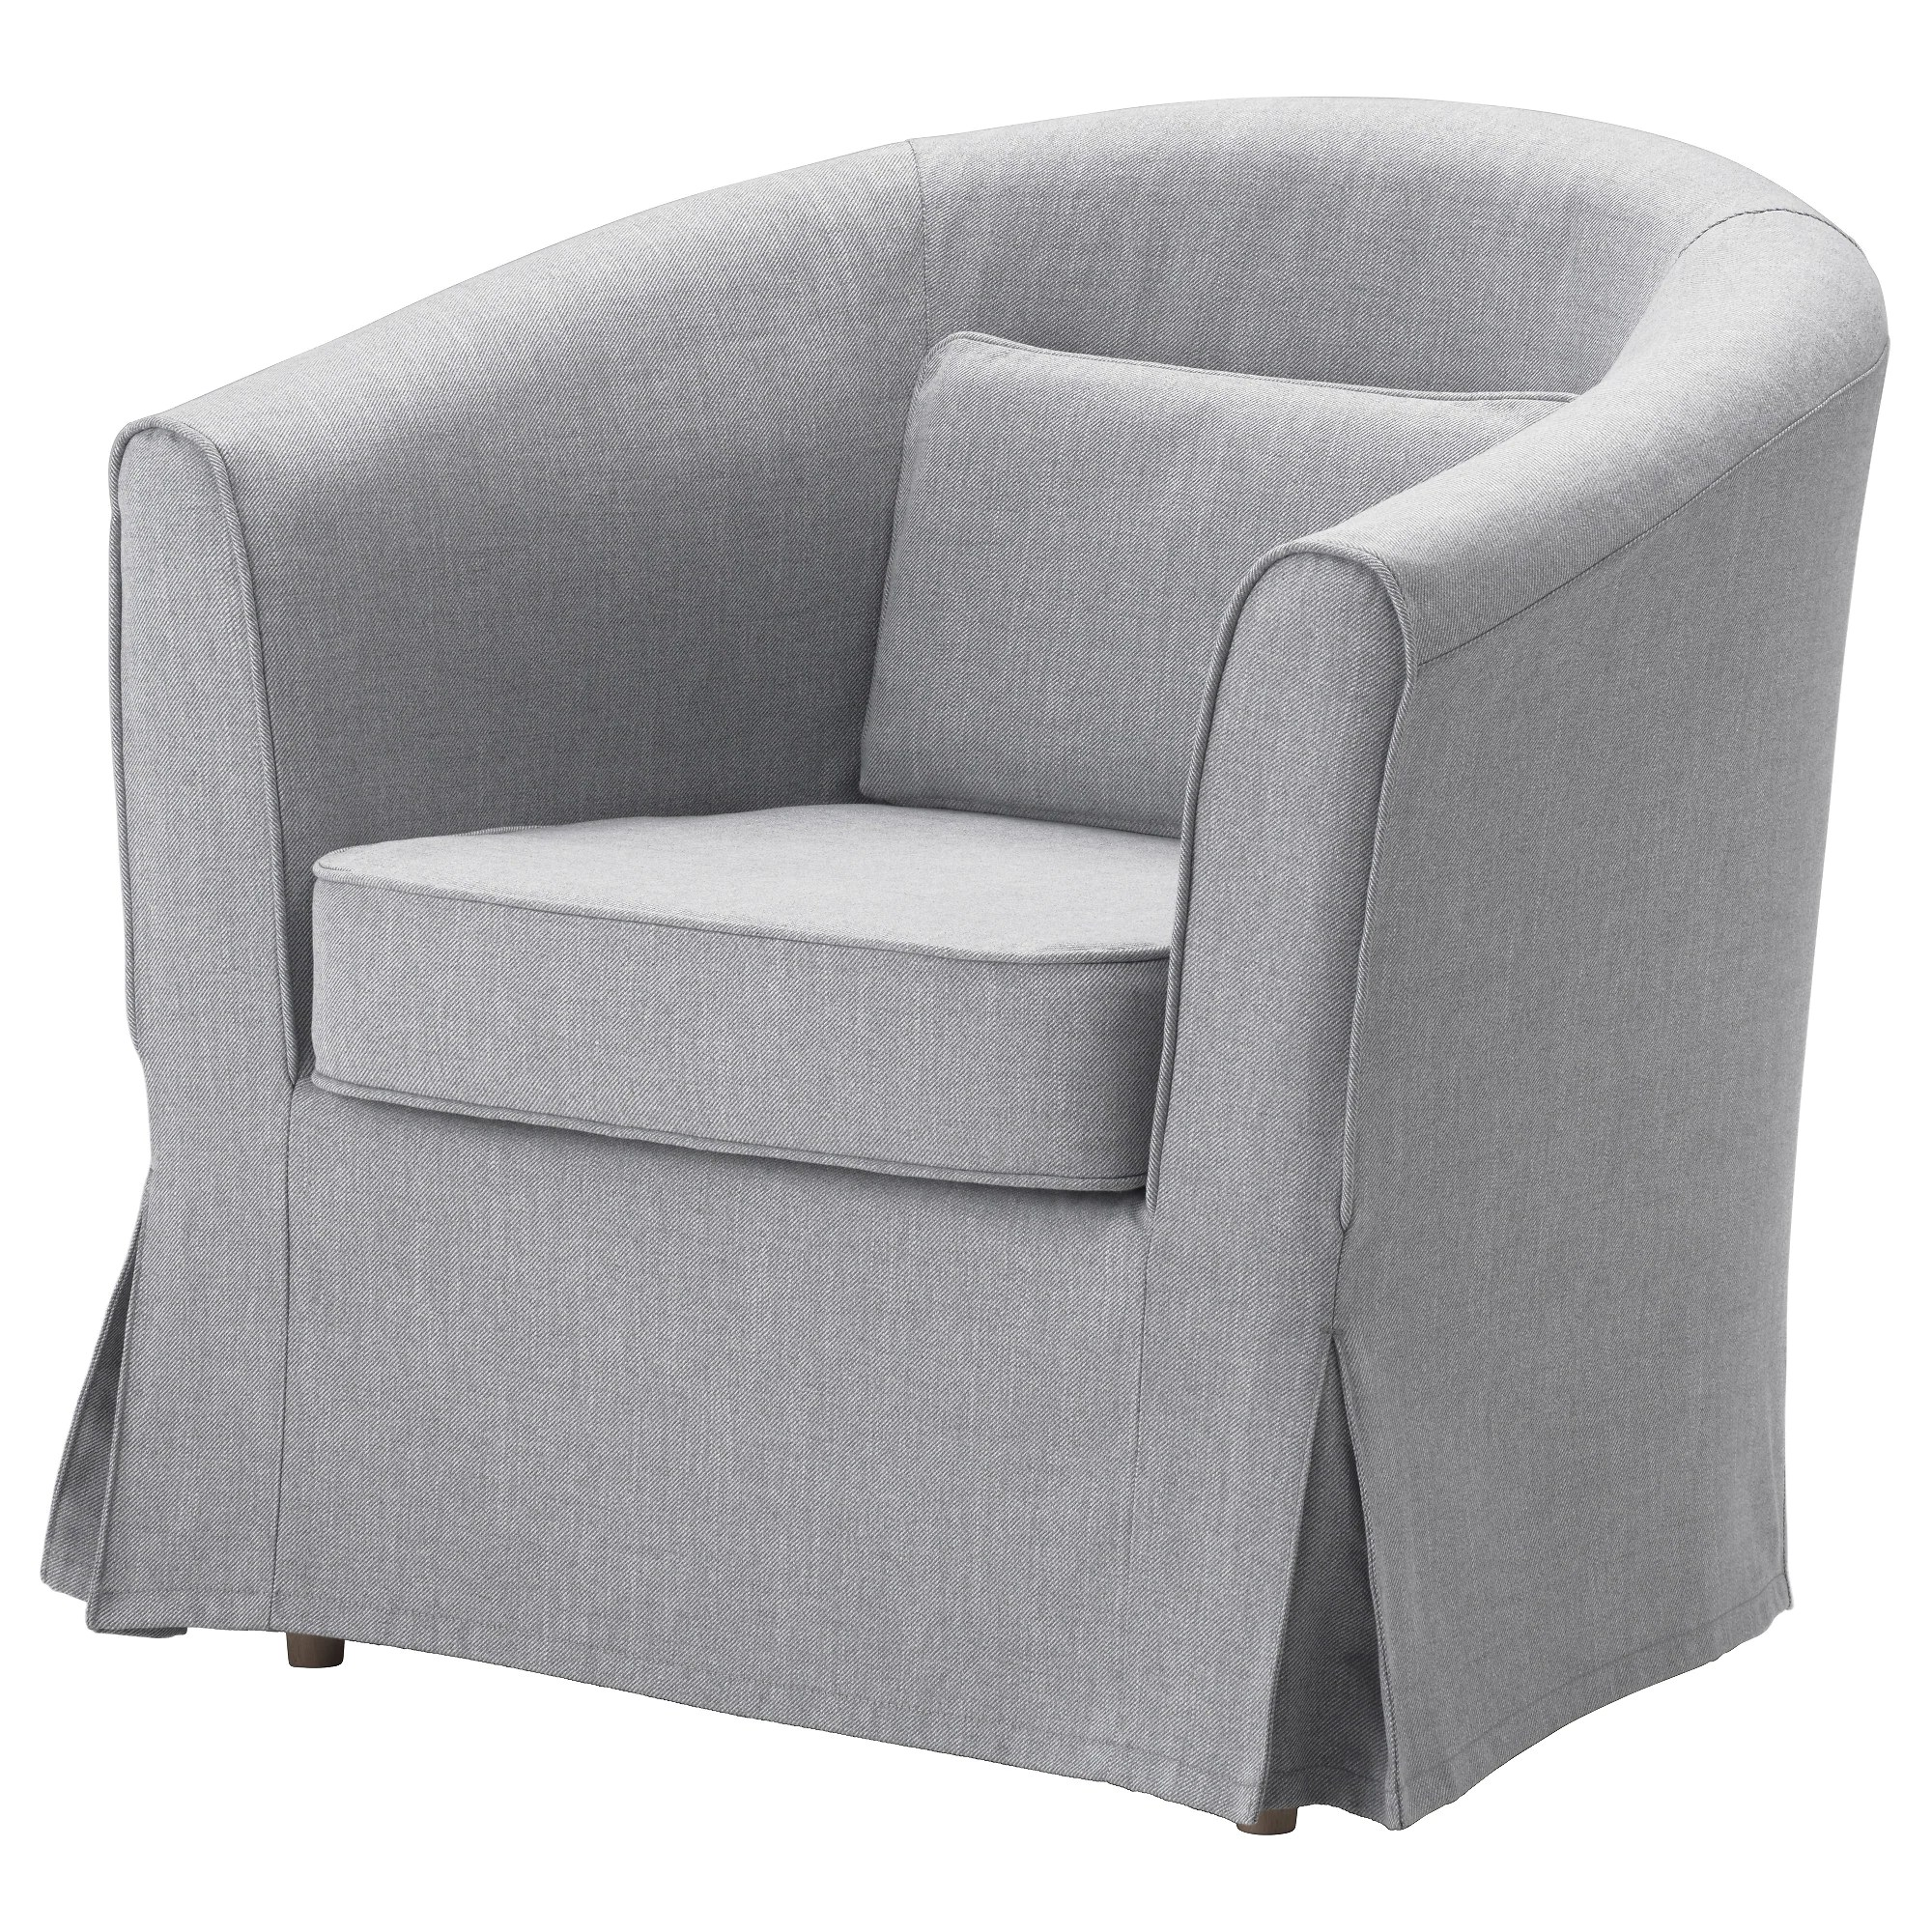 chair covers that fit ikea chairs phil teds metoo portable high tullsta armchair lofallet beige